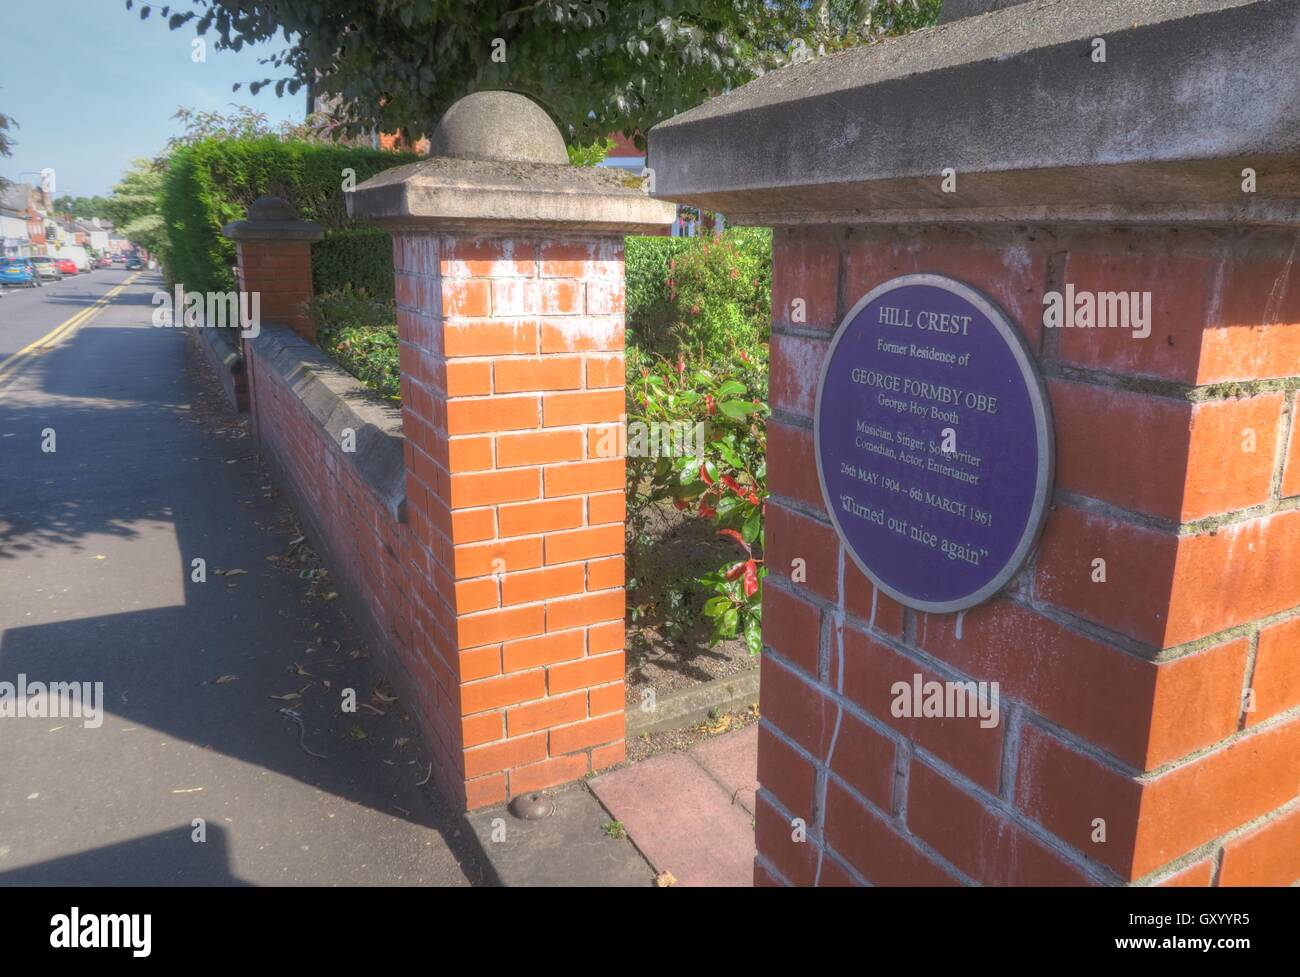 Hill Crest,Residence of George Formby OBE, Stockton Heath,Warrington,Cheshire,England - Stock Image